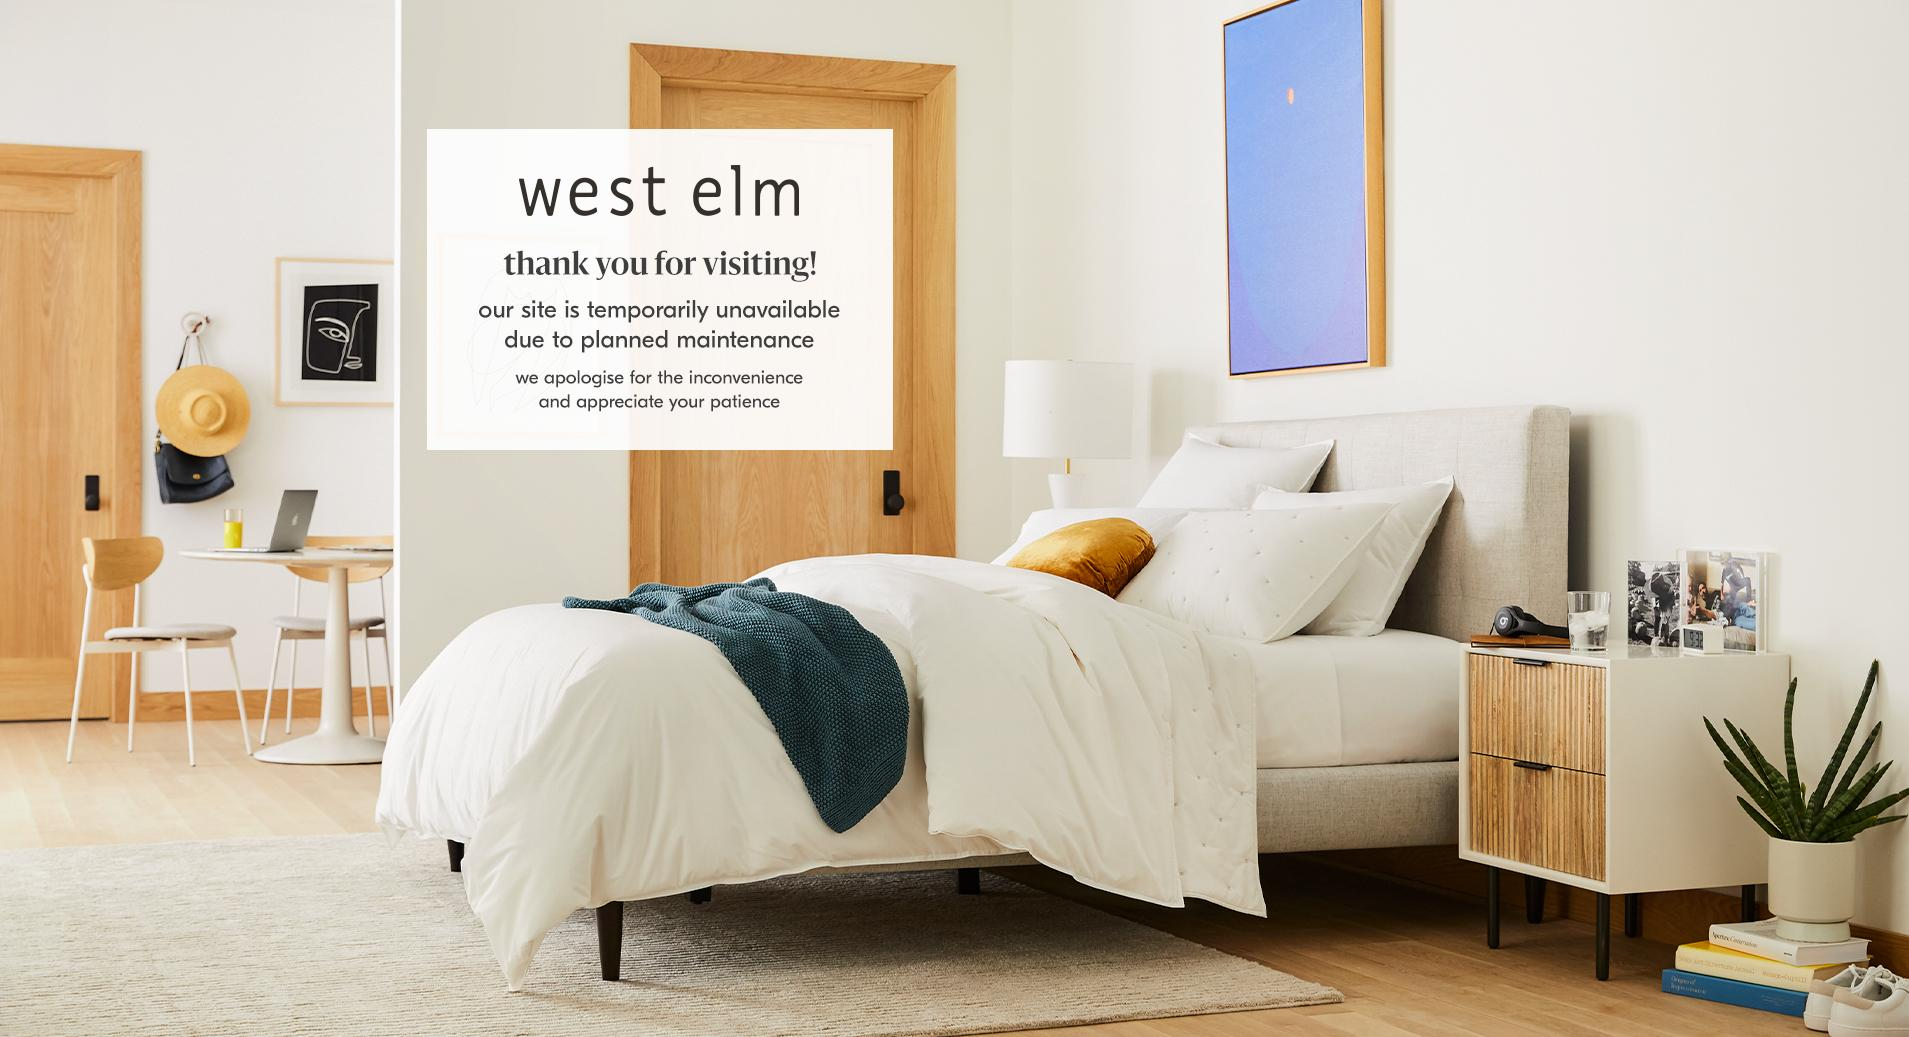 Thank you for visiting west elm. Our site is temporarily unavailable due to a planned maintenance. We apologize for the inconvenience and appreciate your patience.